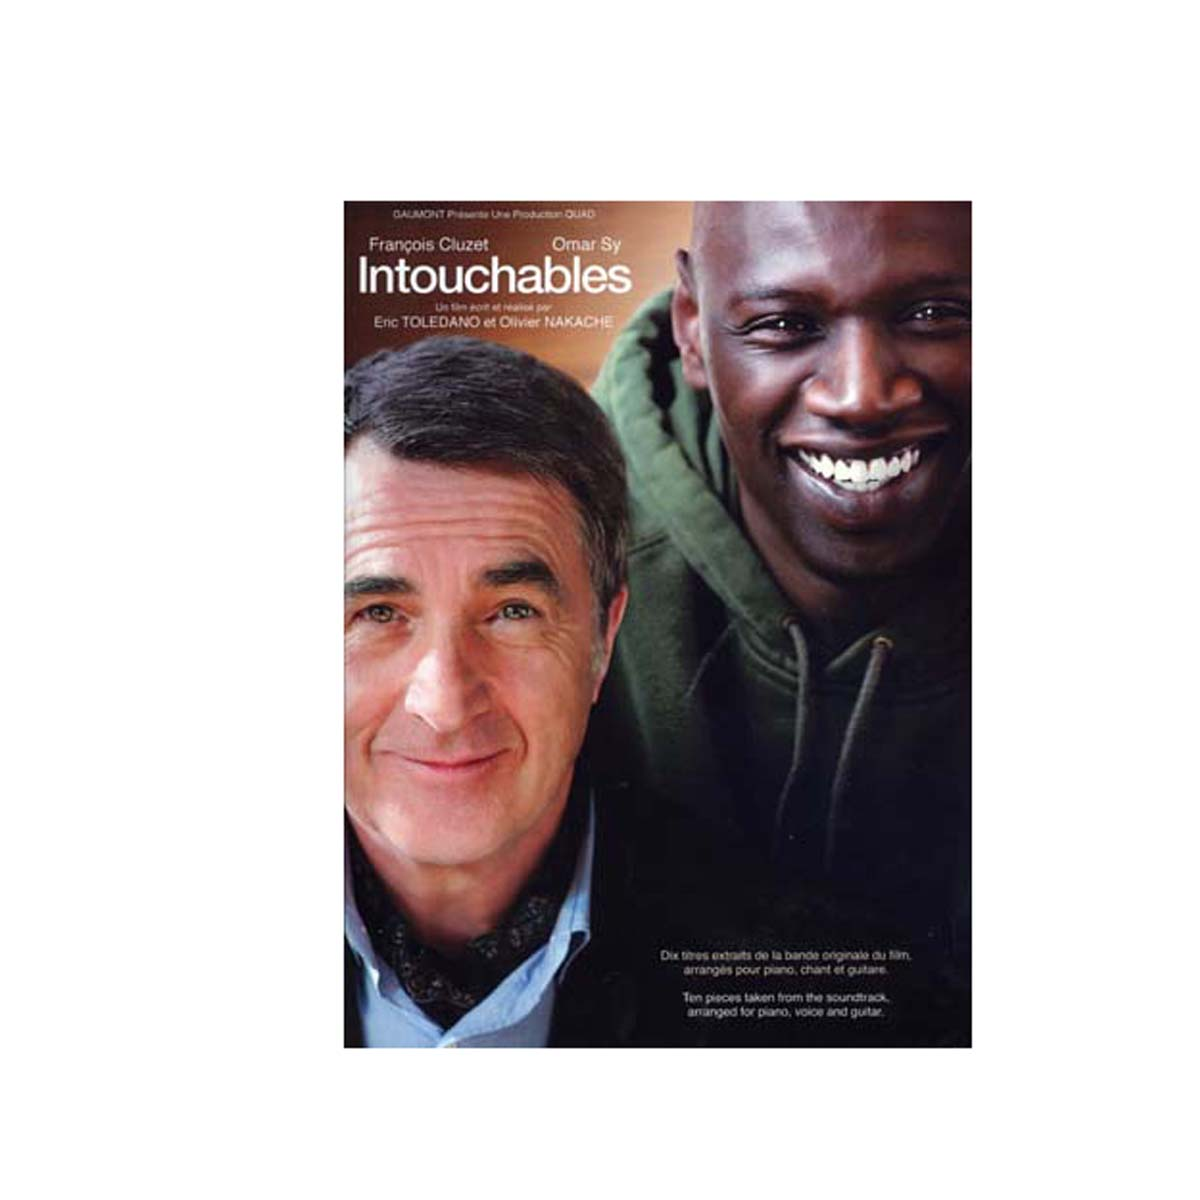 Intouchables original sound track